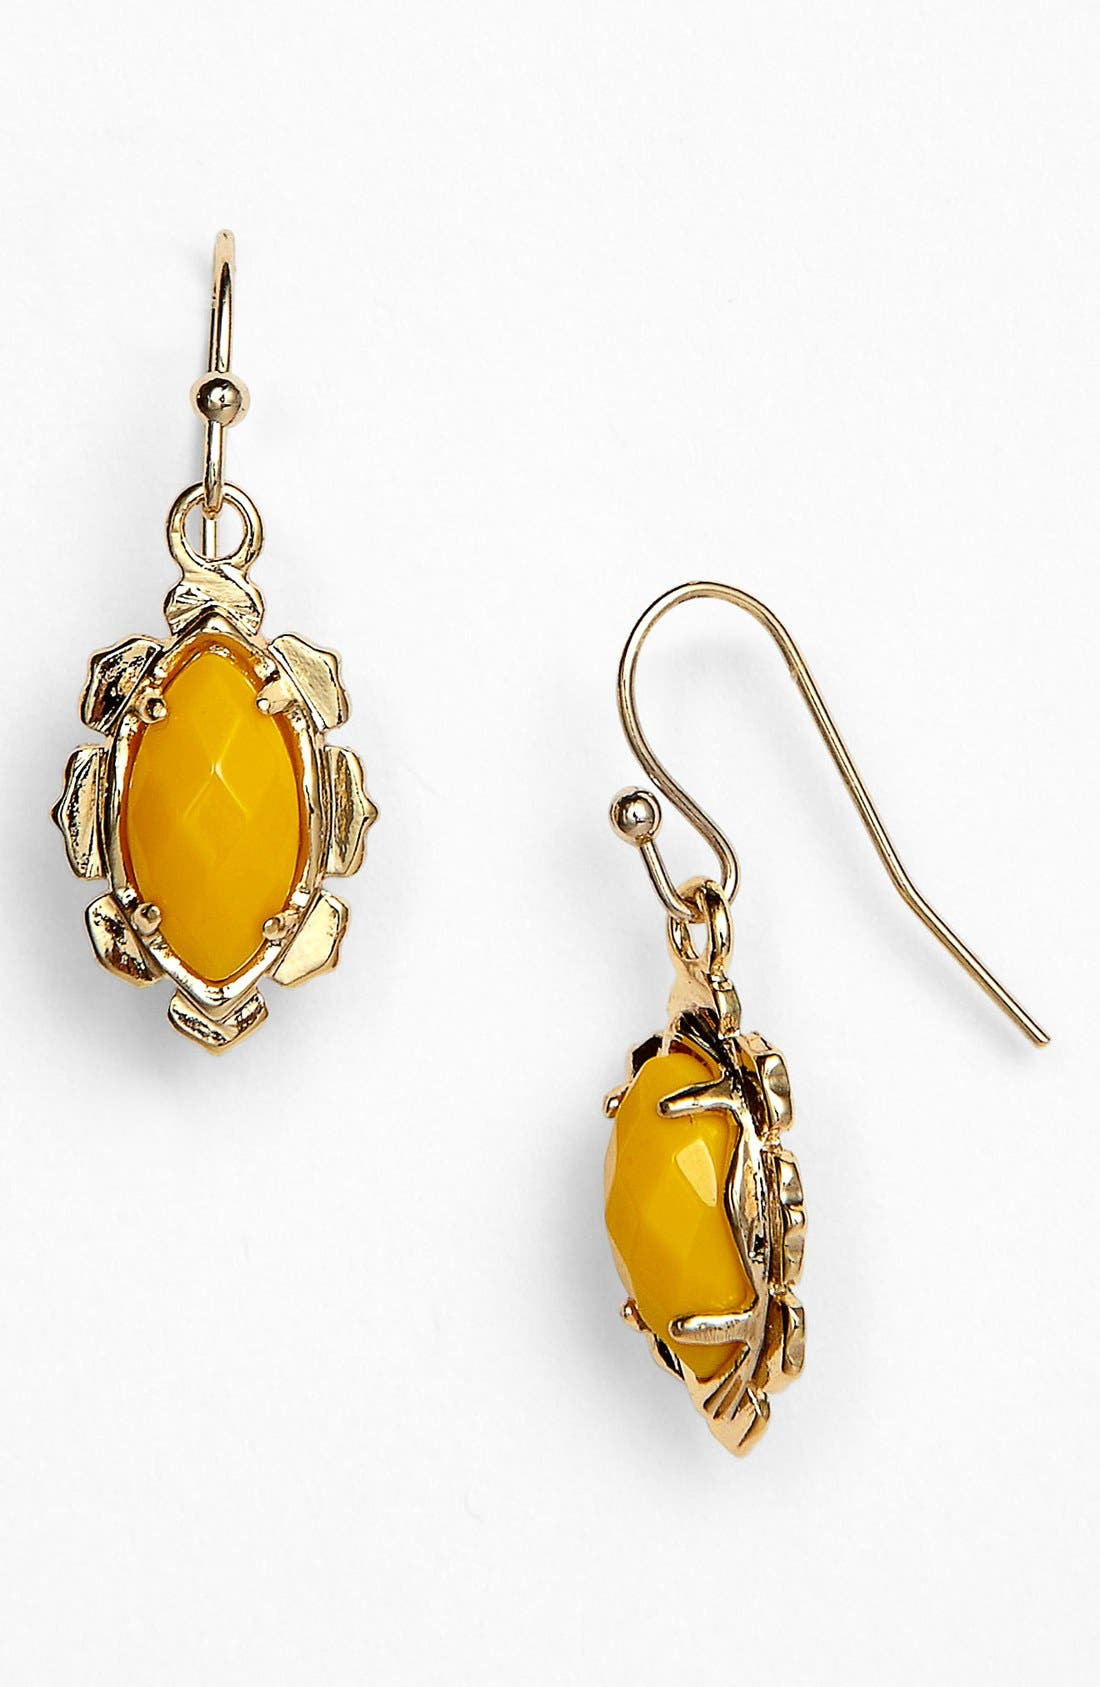 Alternate Image 1 Selected - Kendra Scott 'Zia' Drop Earrings (Nordstrom Exclusive)